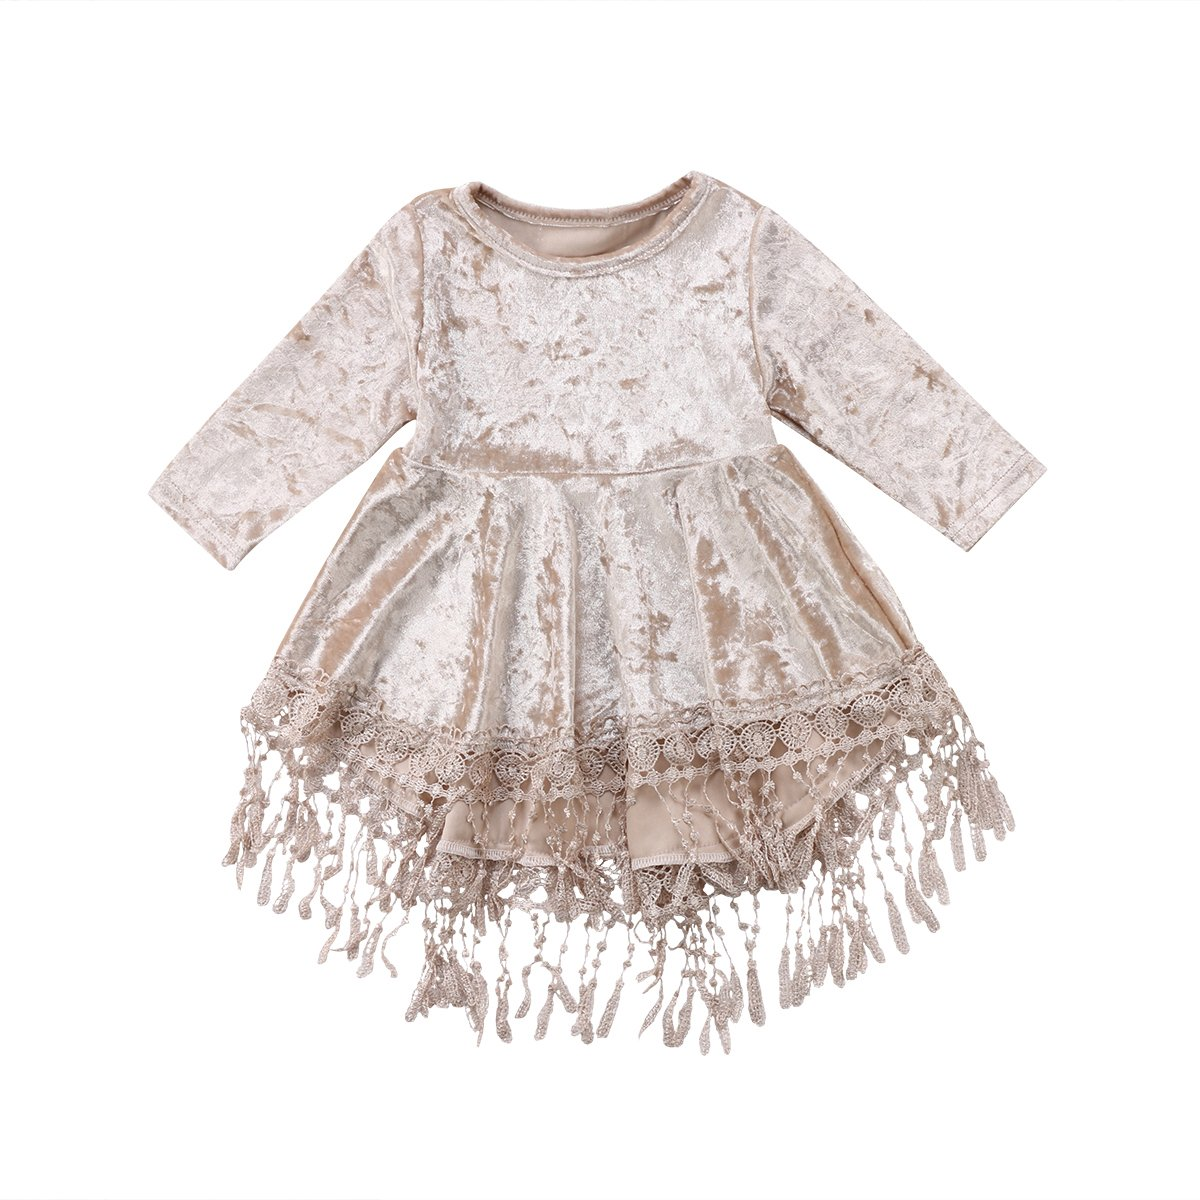 Emmababy Vintage Princess Kids Baby Flower Girls Dress Silver Velvet Tassels Party Dresses Outfit (Silver, 1-2Years) by Emmababy